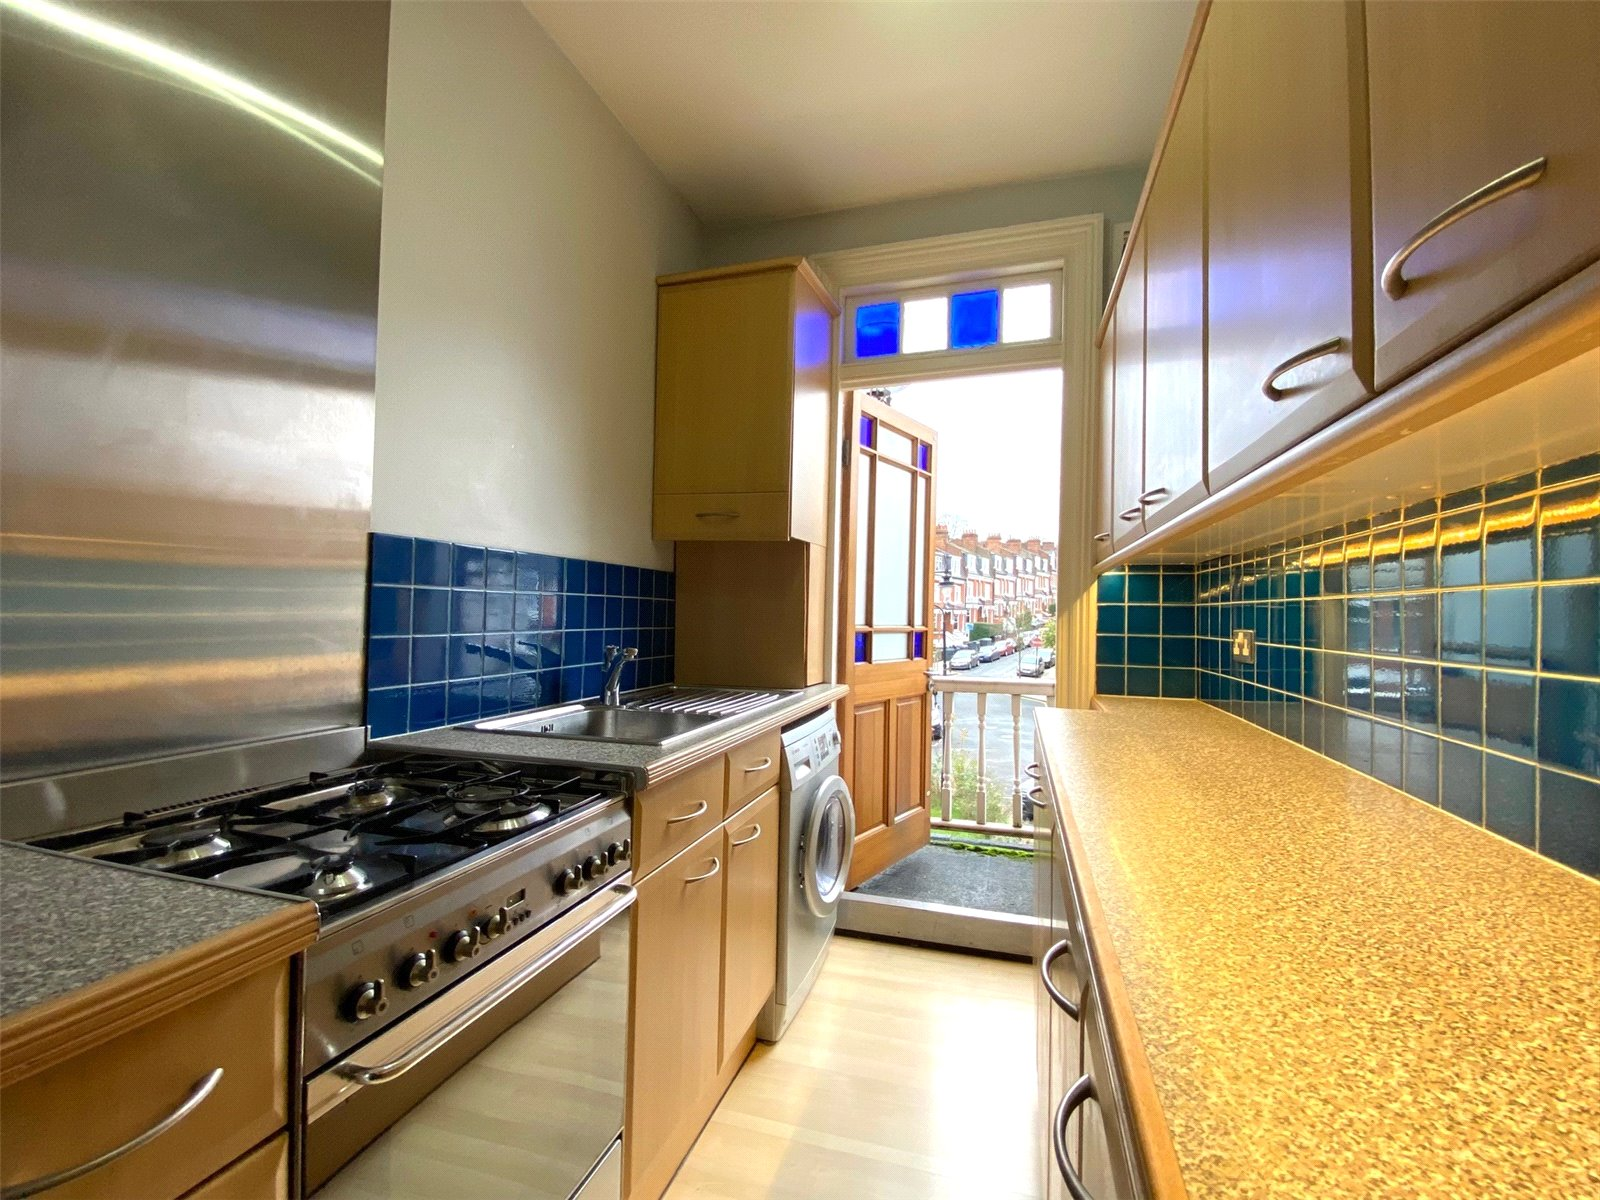 2 bed apartment to rent in Highgate, N6 5PZ - Property Image 1